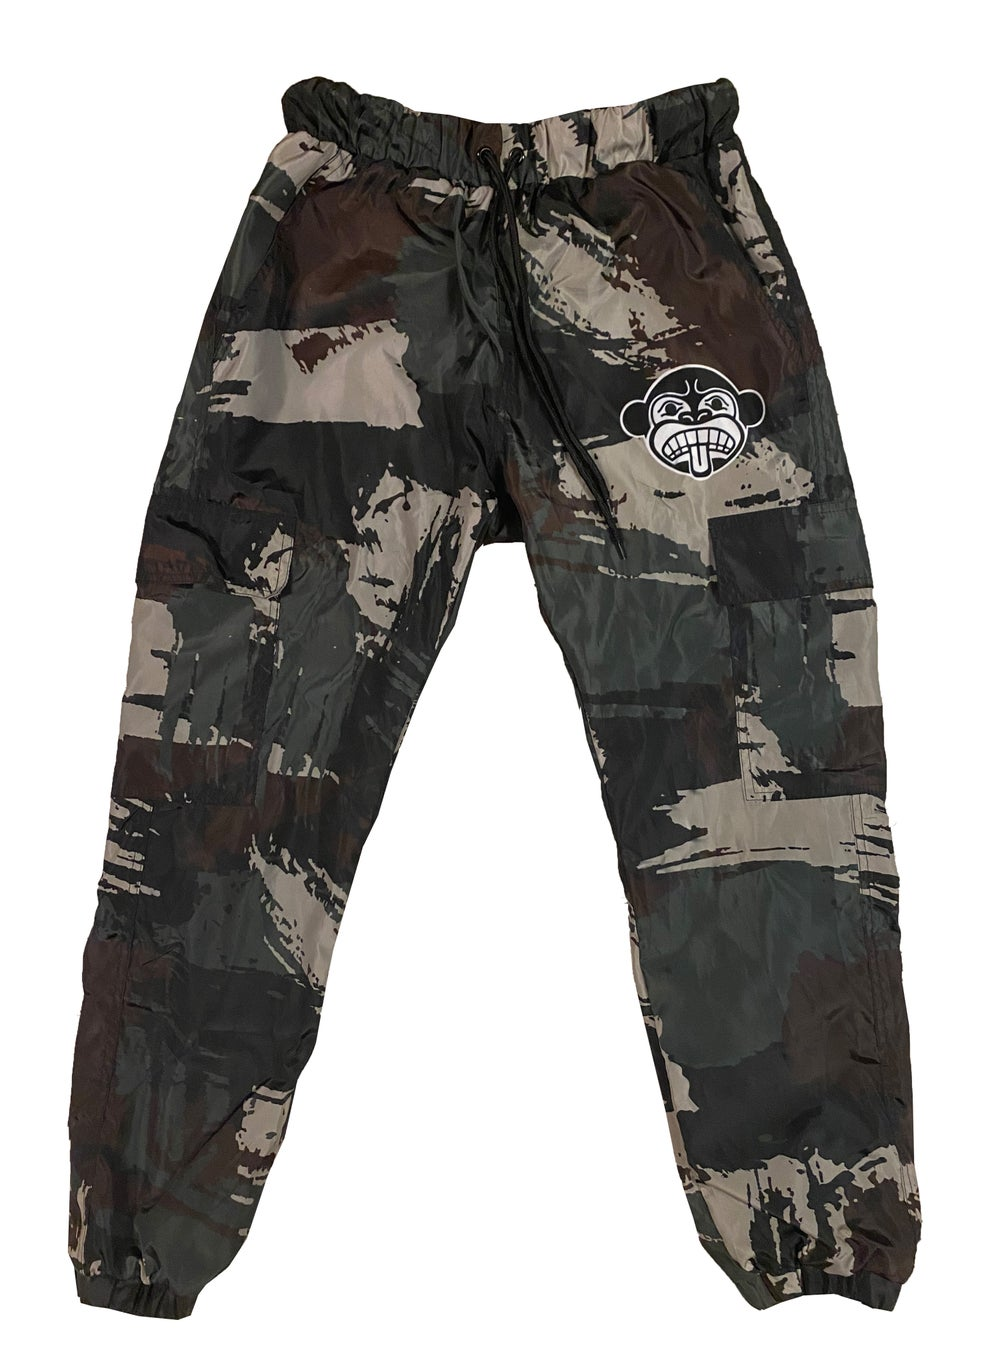 Cargo Pocket Camo Windbreaker Pants